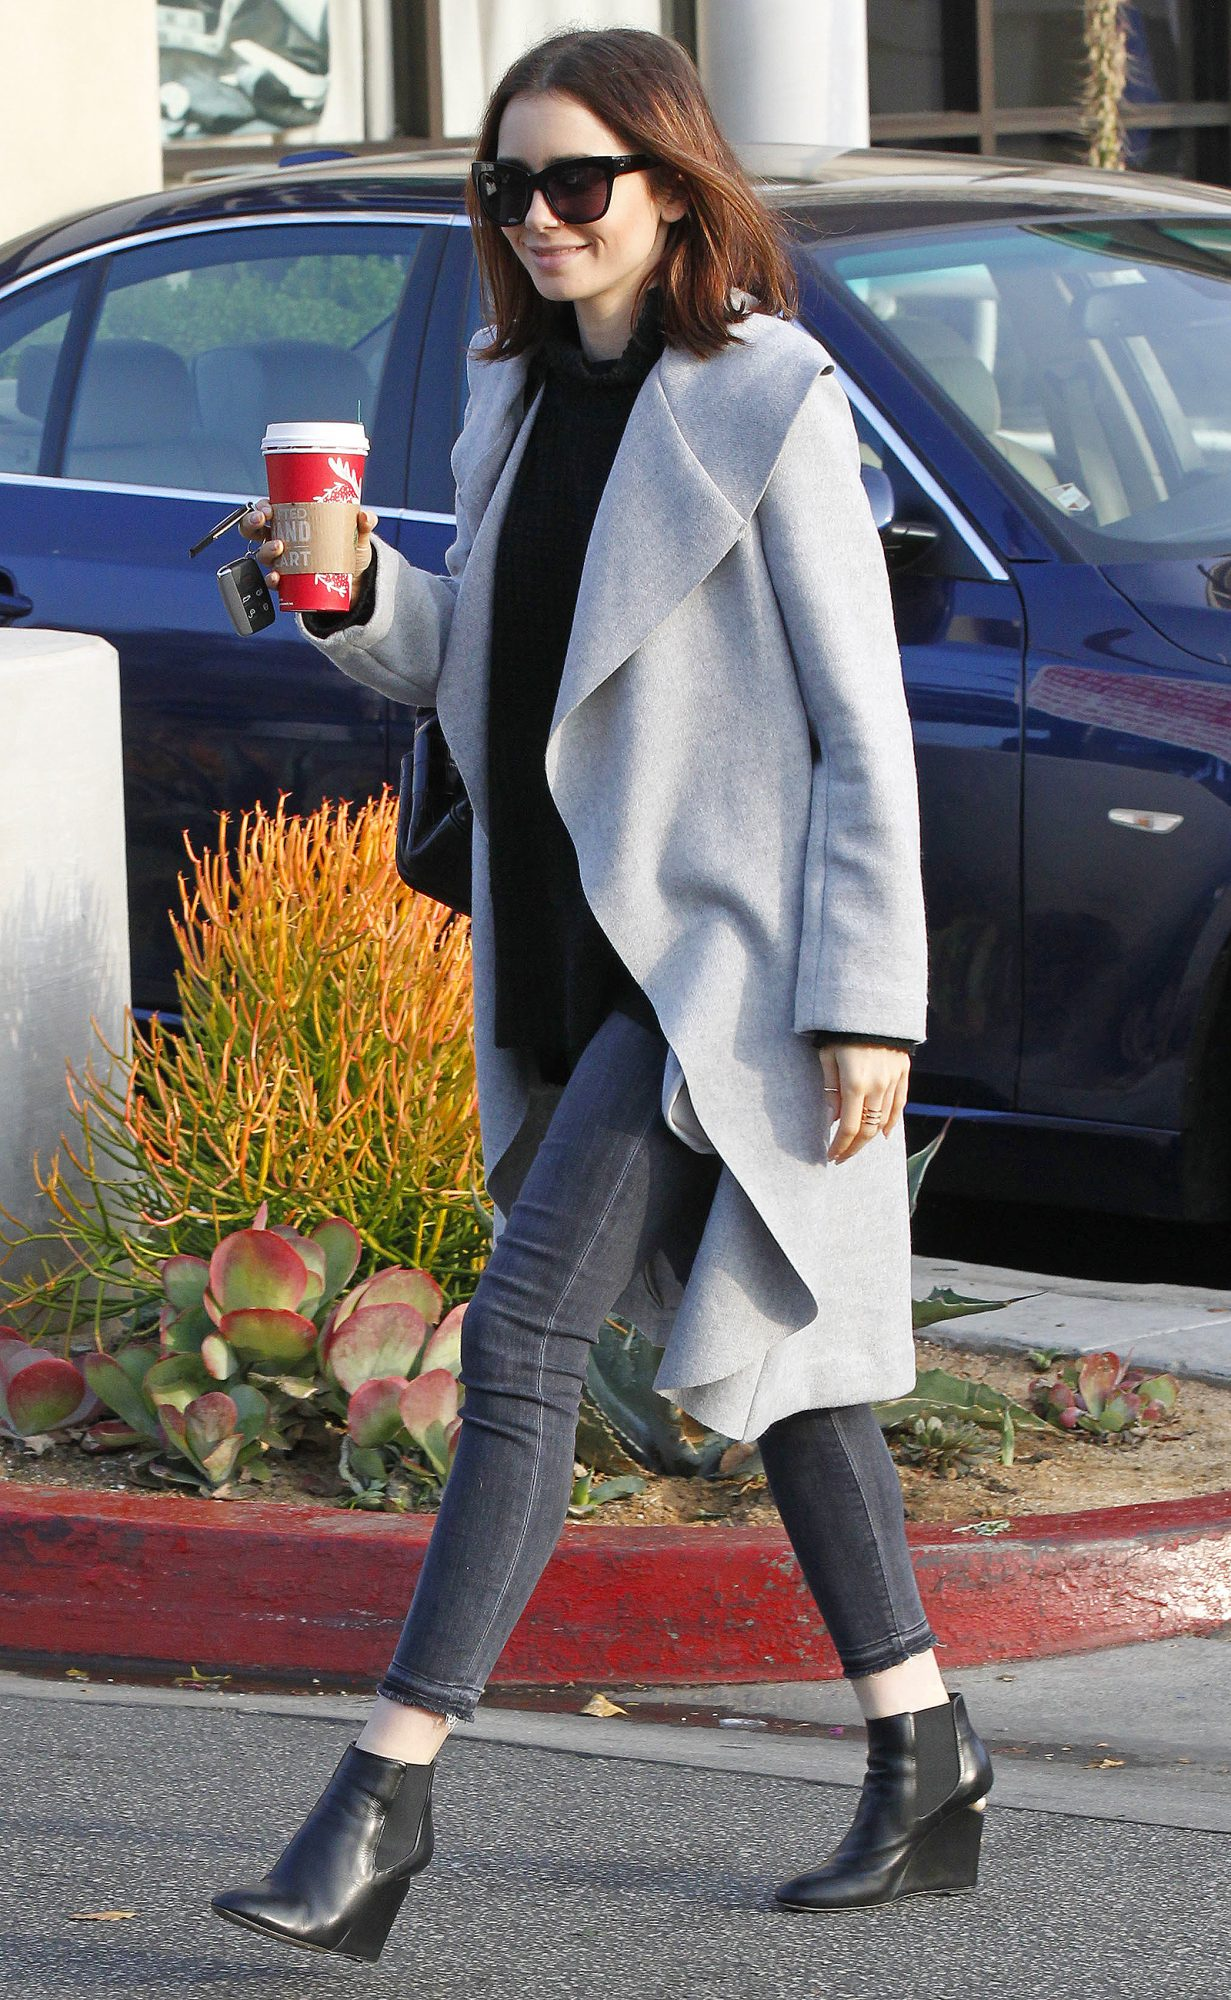 EXCLUSIVE: Lily Collins seen at The London Hotel in West Hollywood